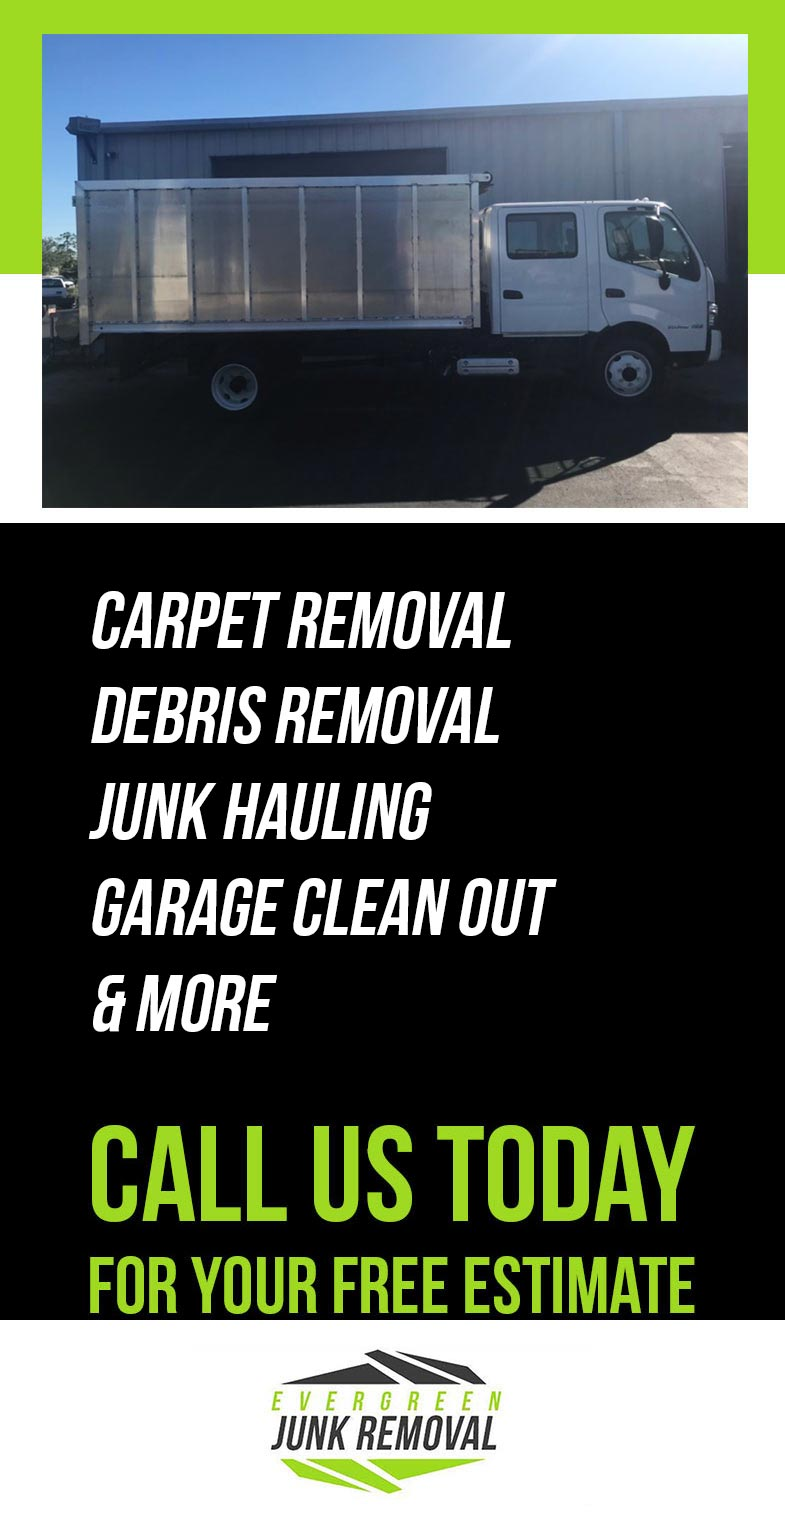 Carpet Removal Hollywood Florida